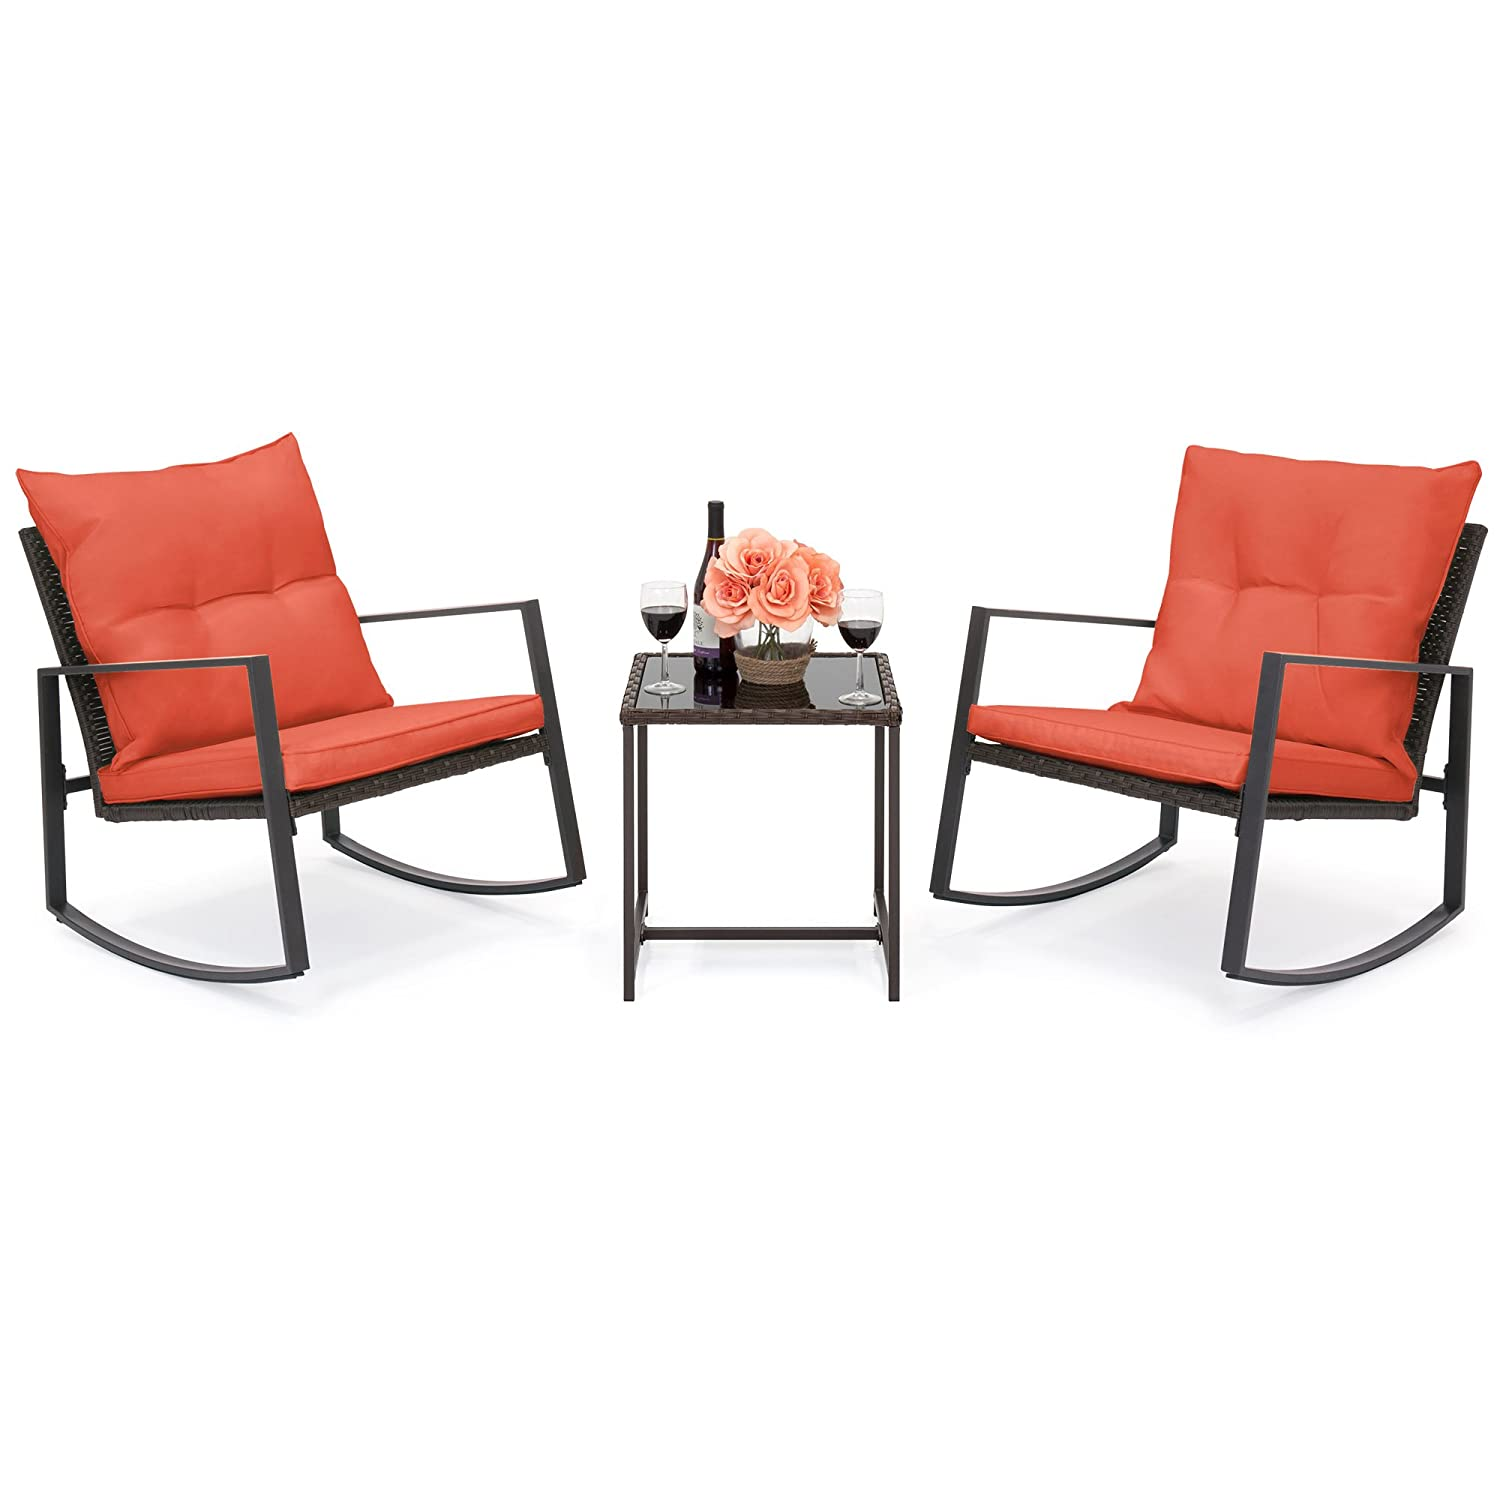 Best Choice Products 3-Piece Patio Wicker Bistro Furniture Set w 2 Rocking Chairs, Glass Side Table, Cushions – Red